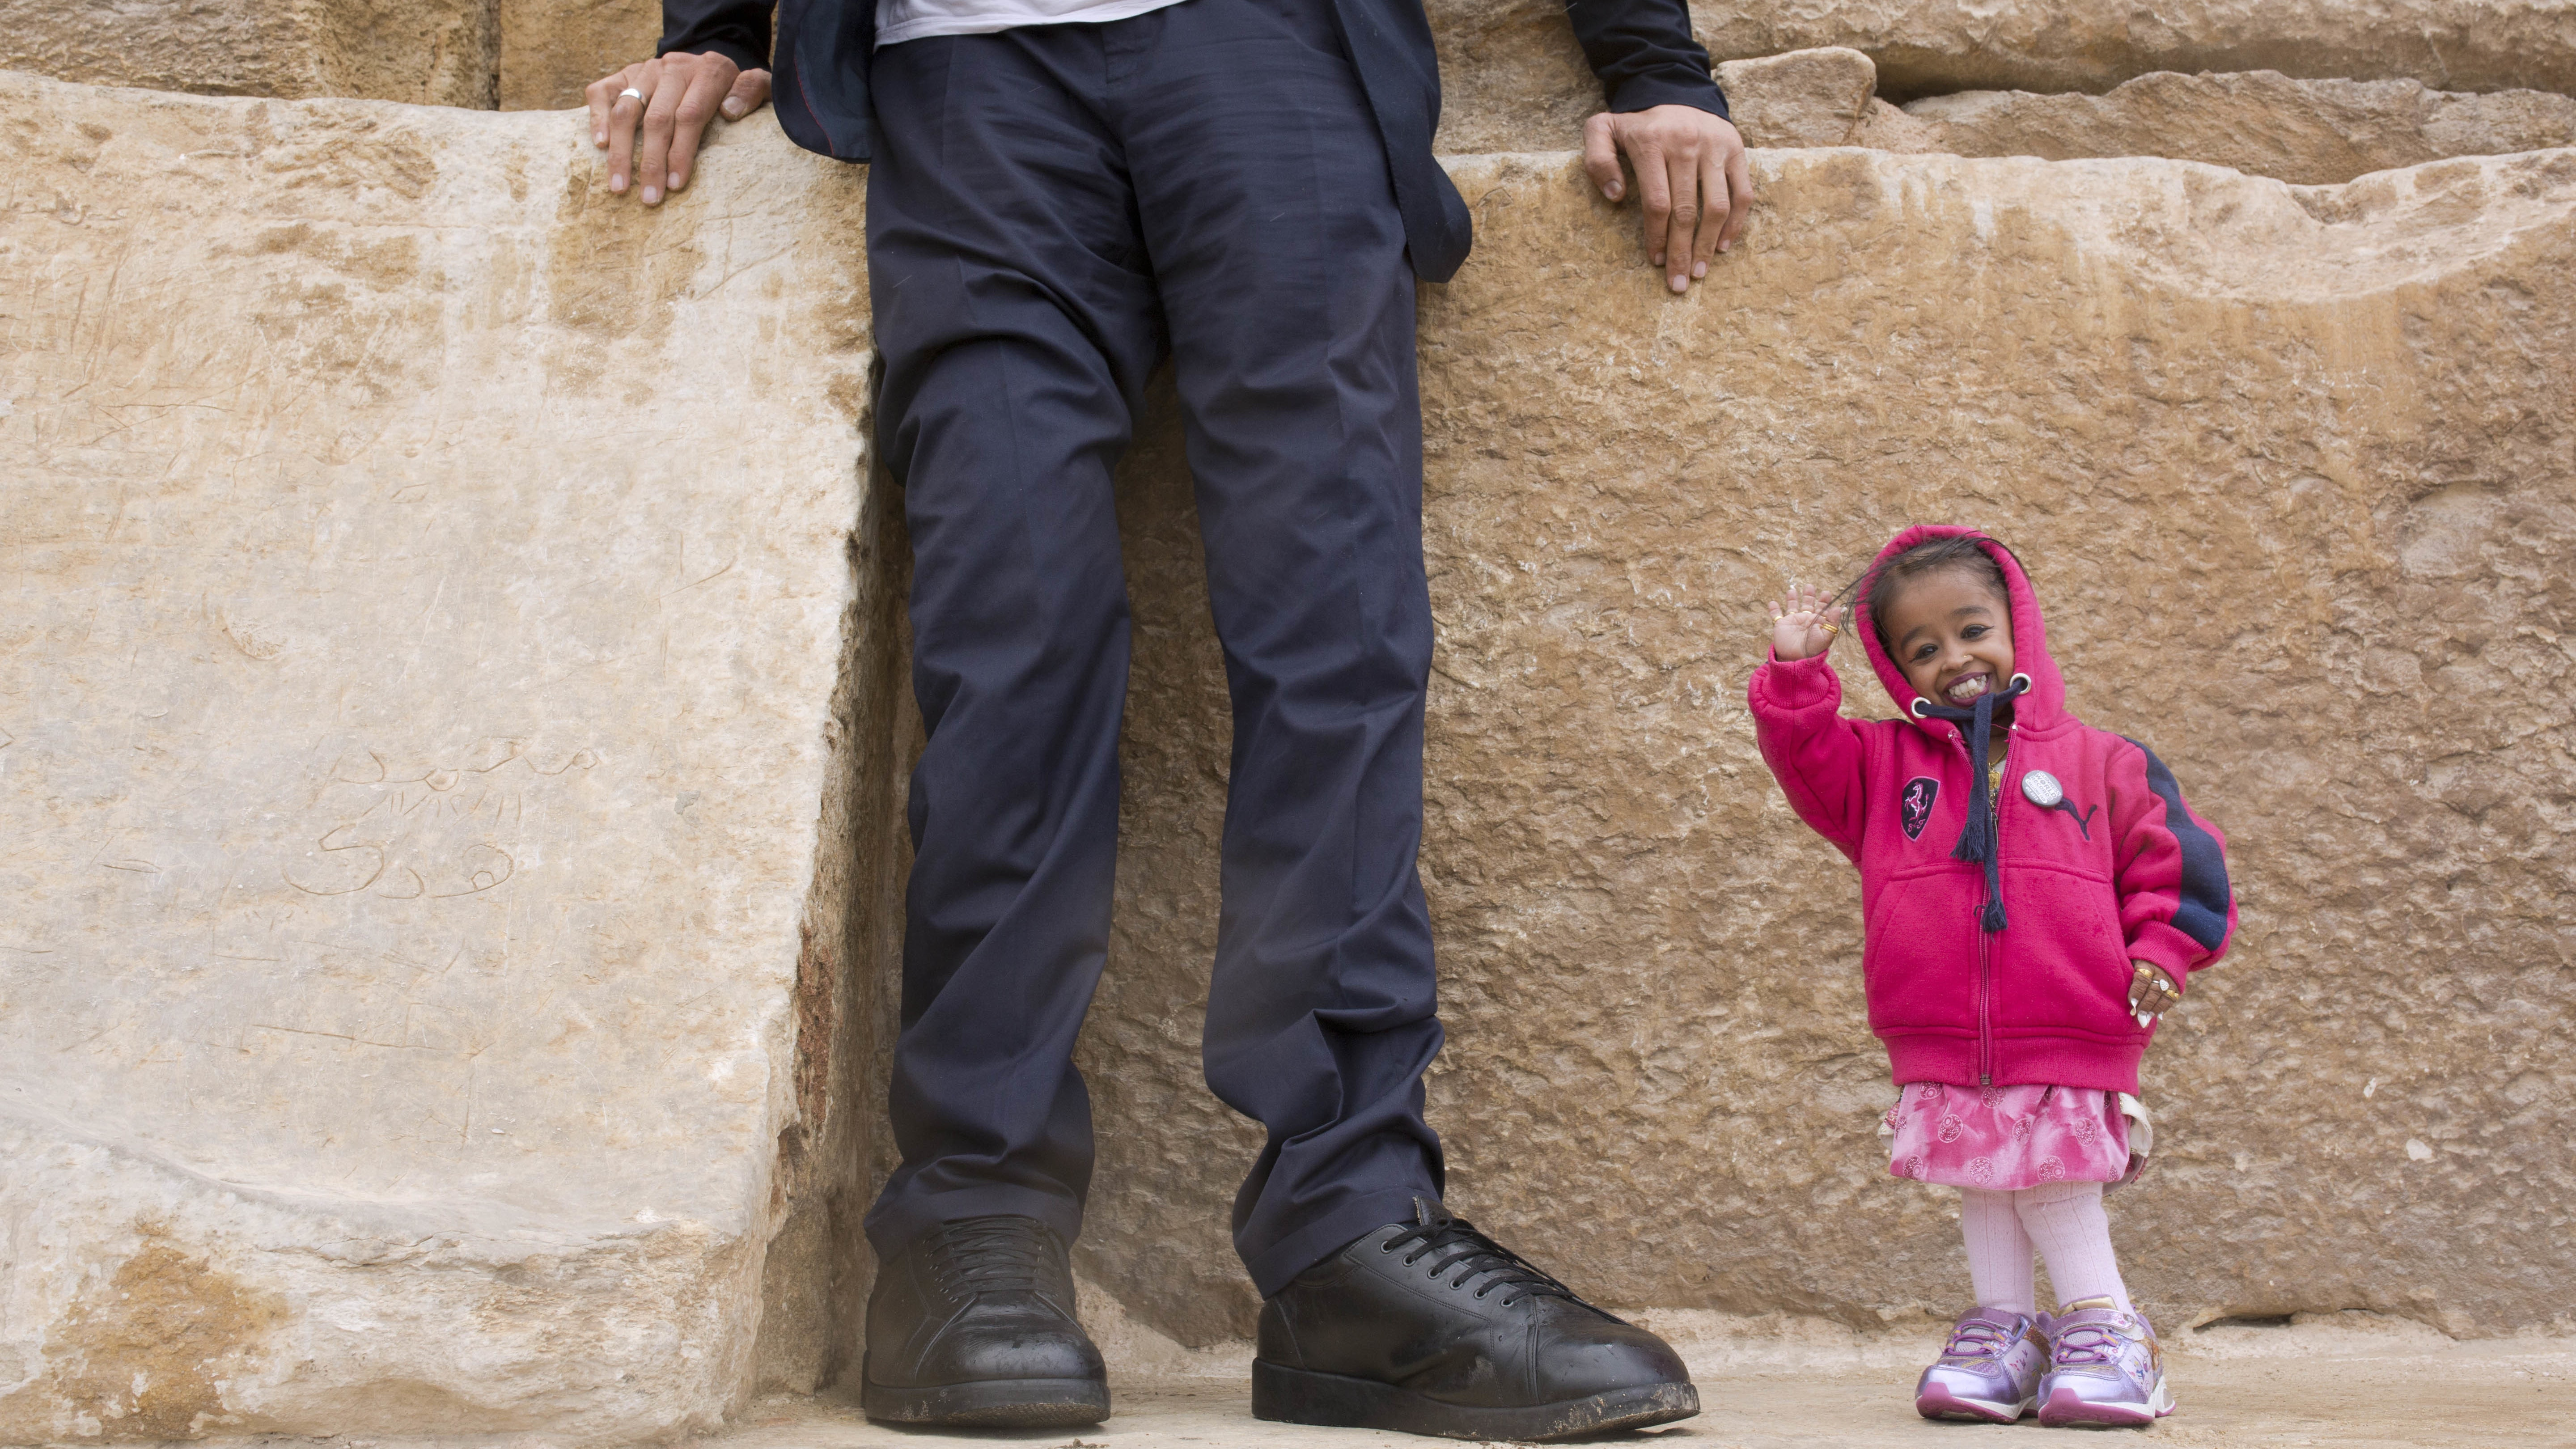 The World S Tallest Man And Shortest Woman Hung Out And It